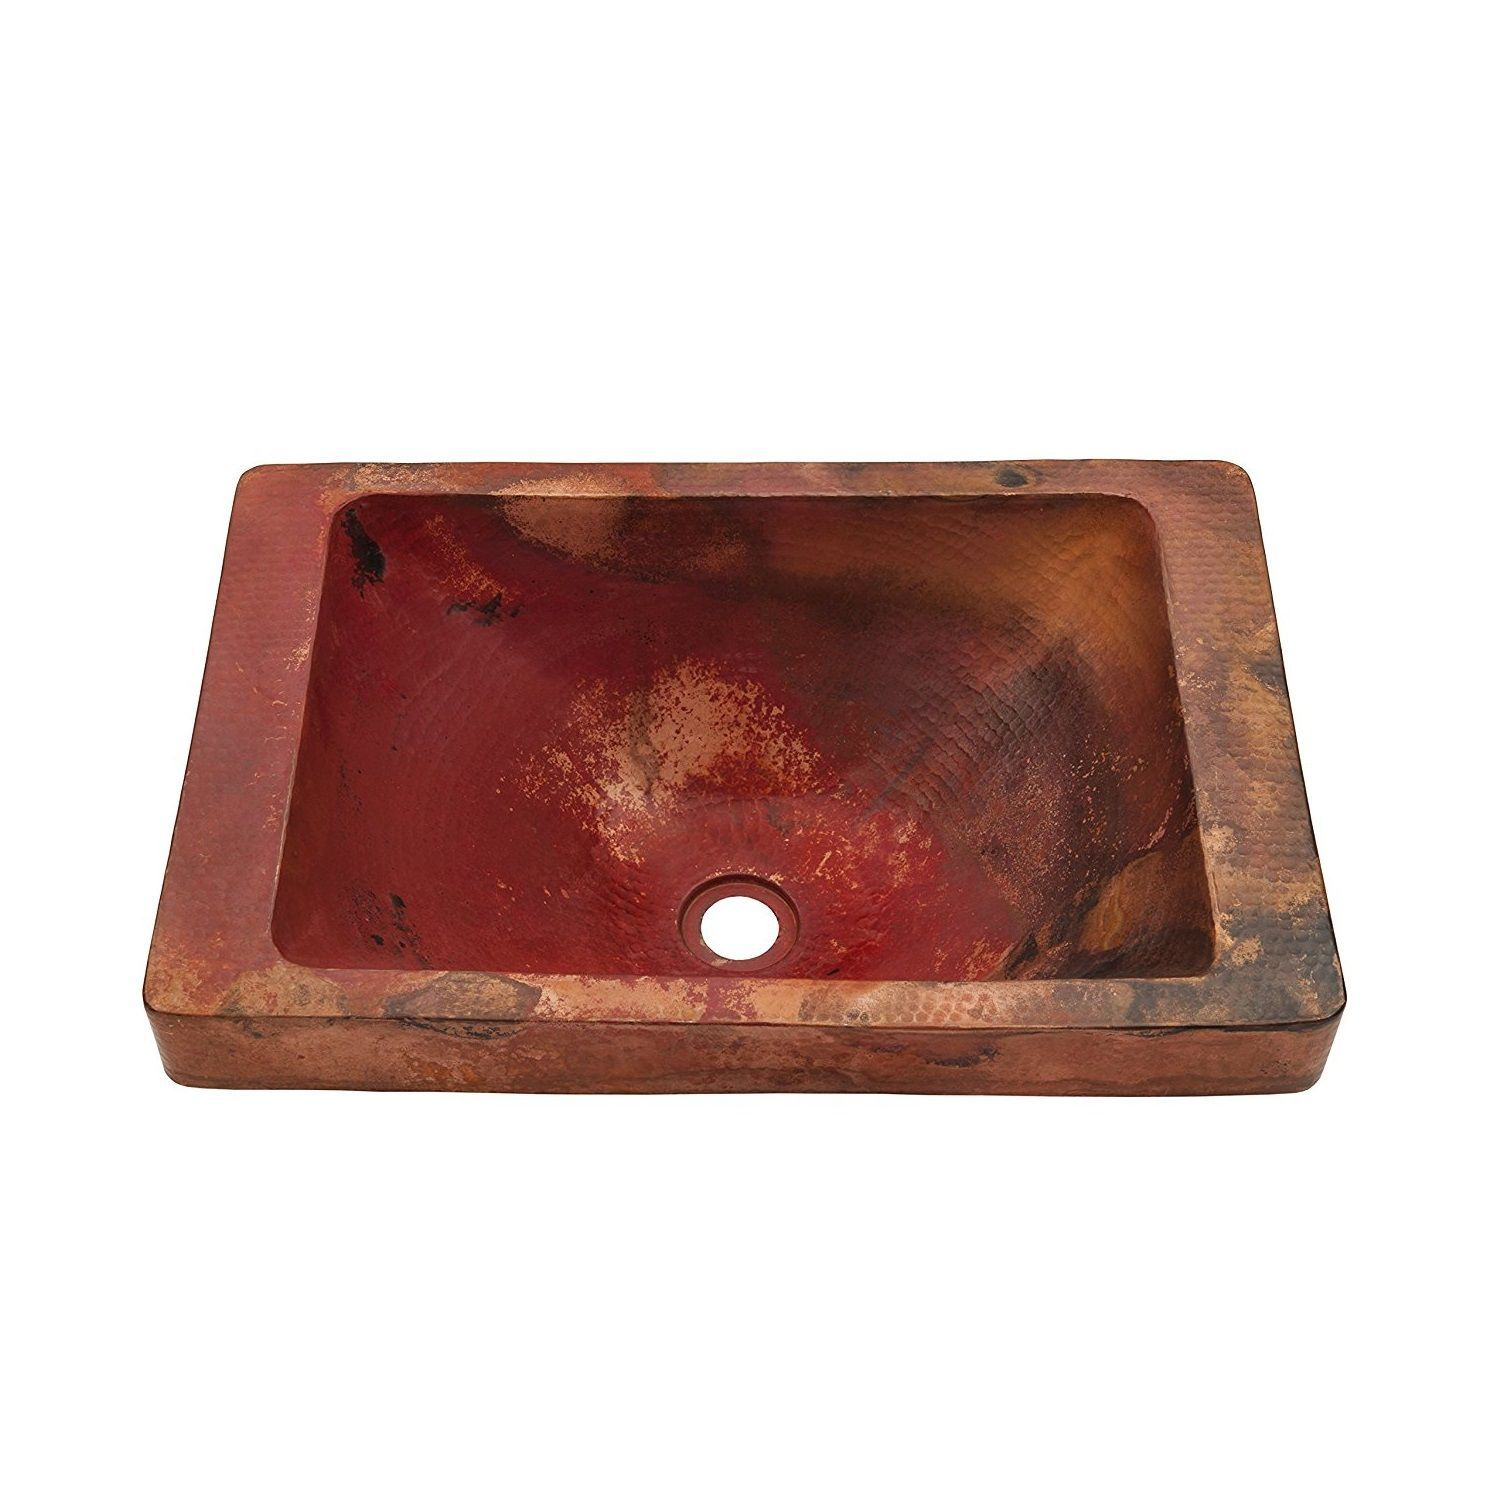 Best Farmhouse Copper Sinks And Farmhouse Vessel Sinks Discover The Most Beautiful Copper Sinks Fo Copper Sink Bathroom Copper Bathroom Copper Farmhouse Sinks